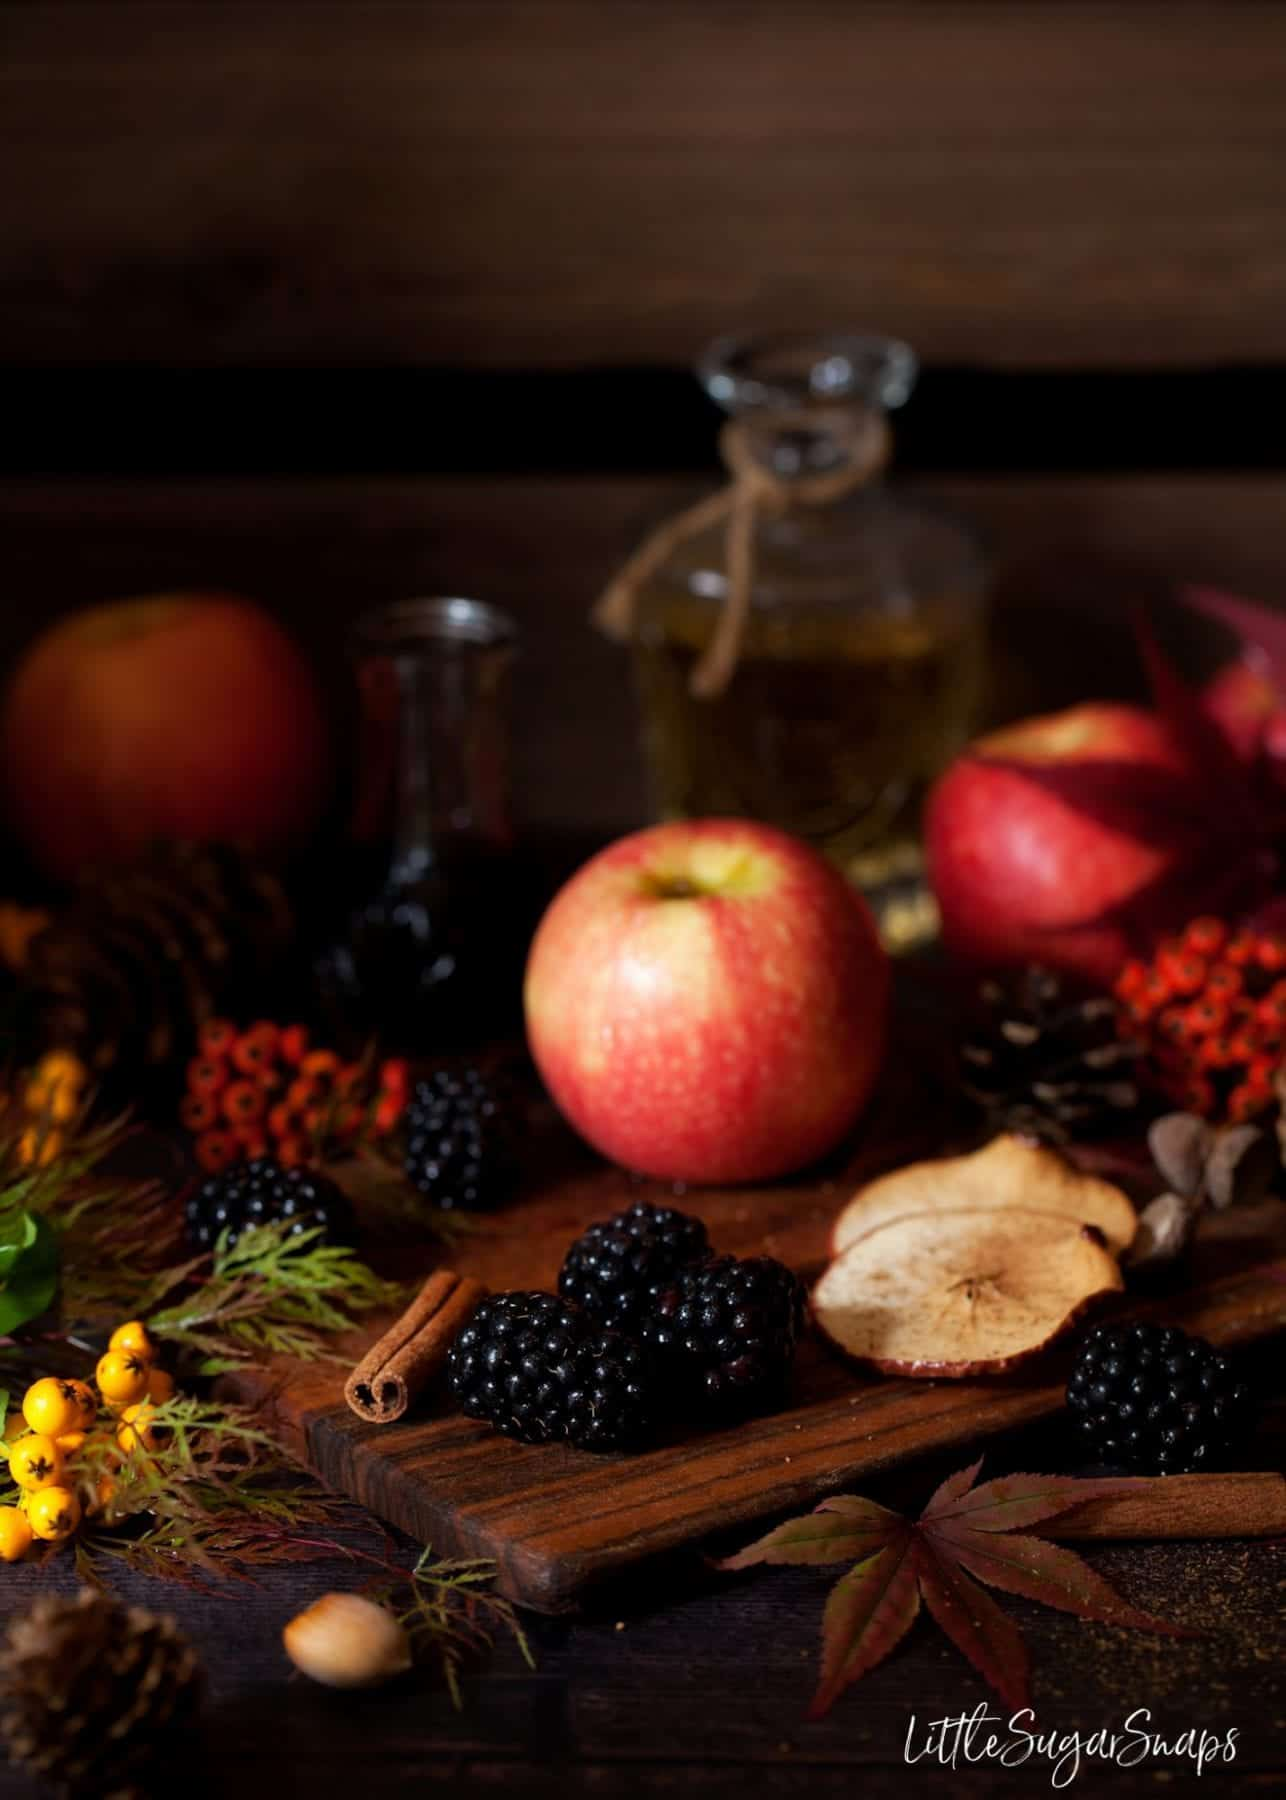 Autumn fruits on a wooden board with seasonal foliage alongside.